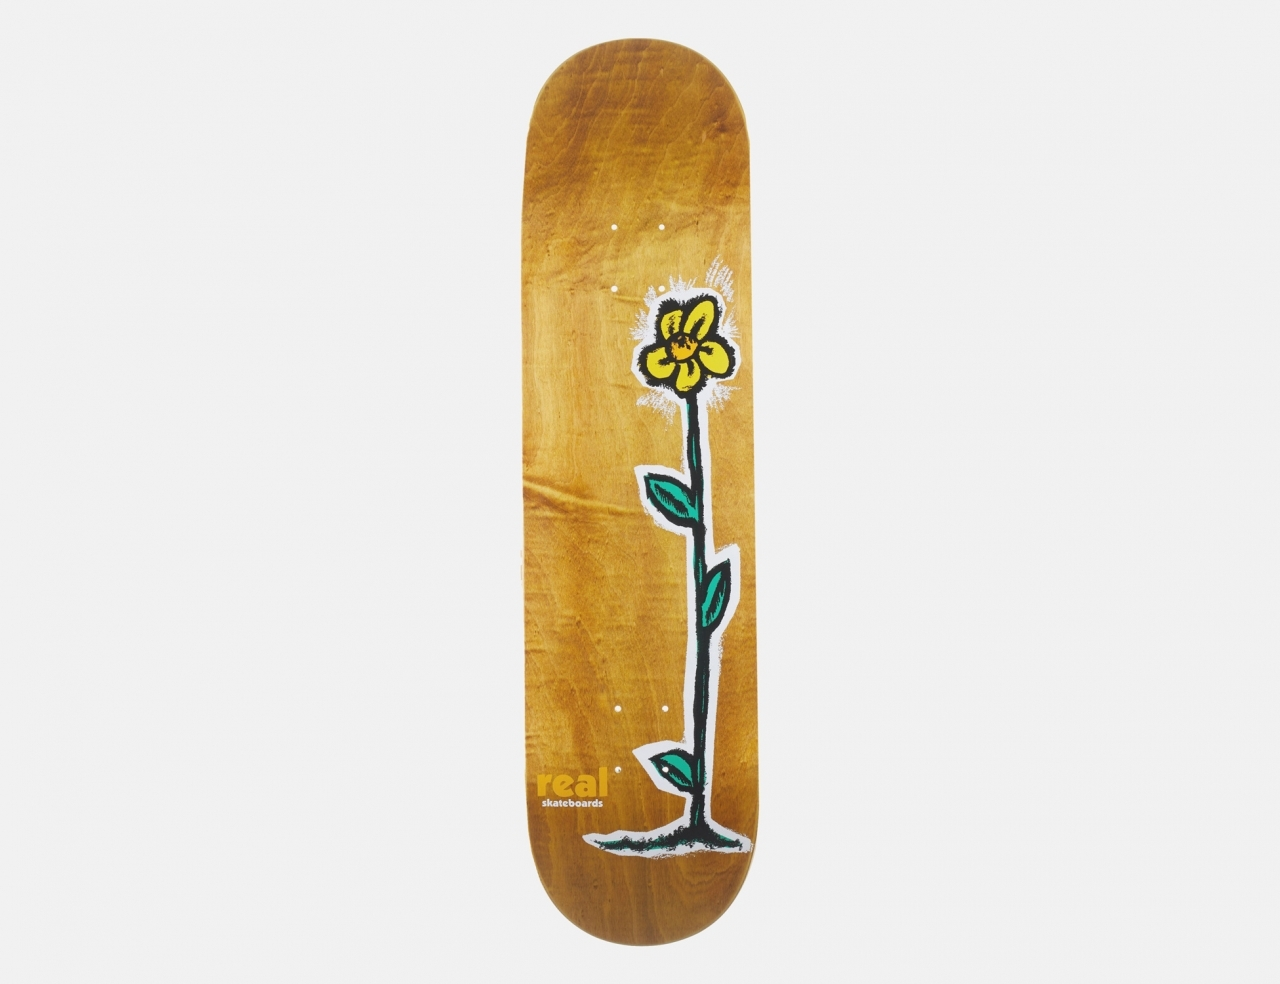 Real Team Regrowth 8.5 Deck